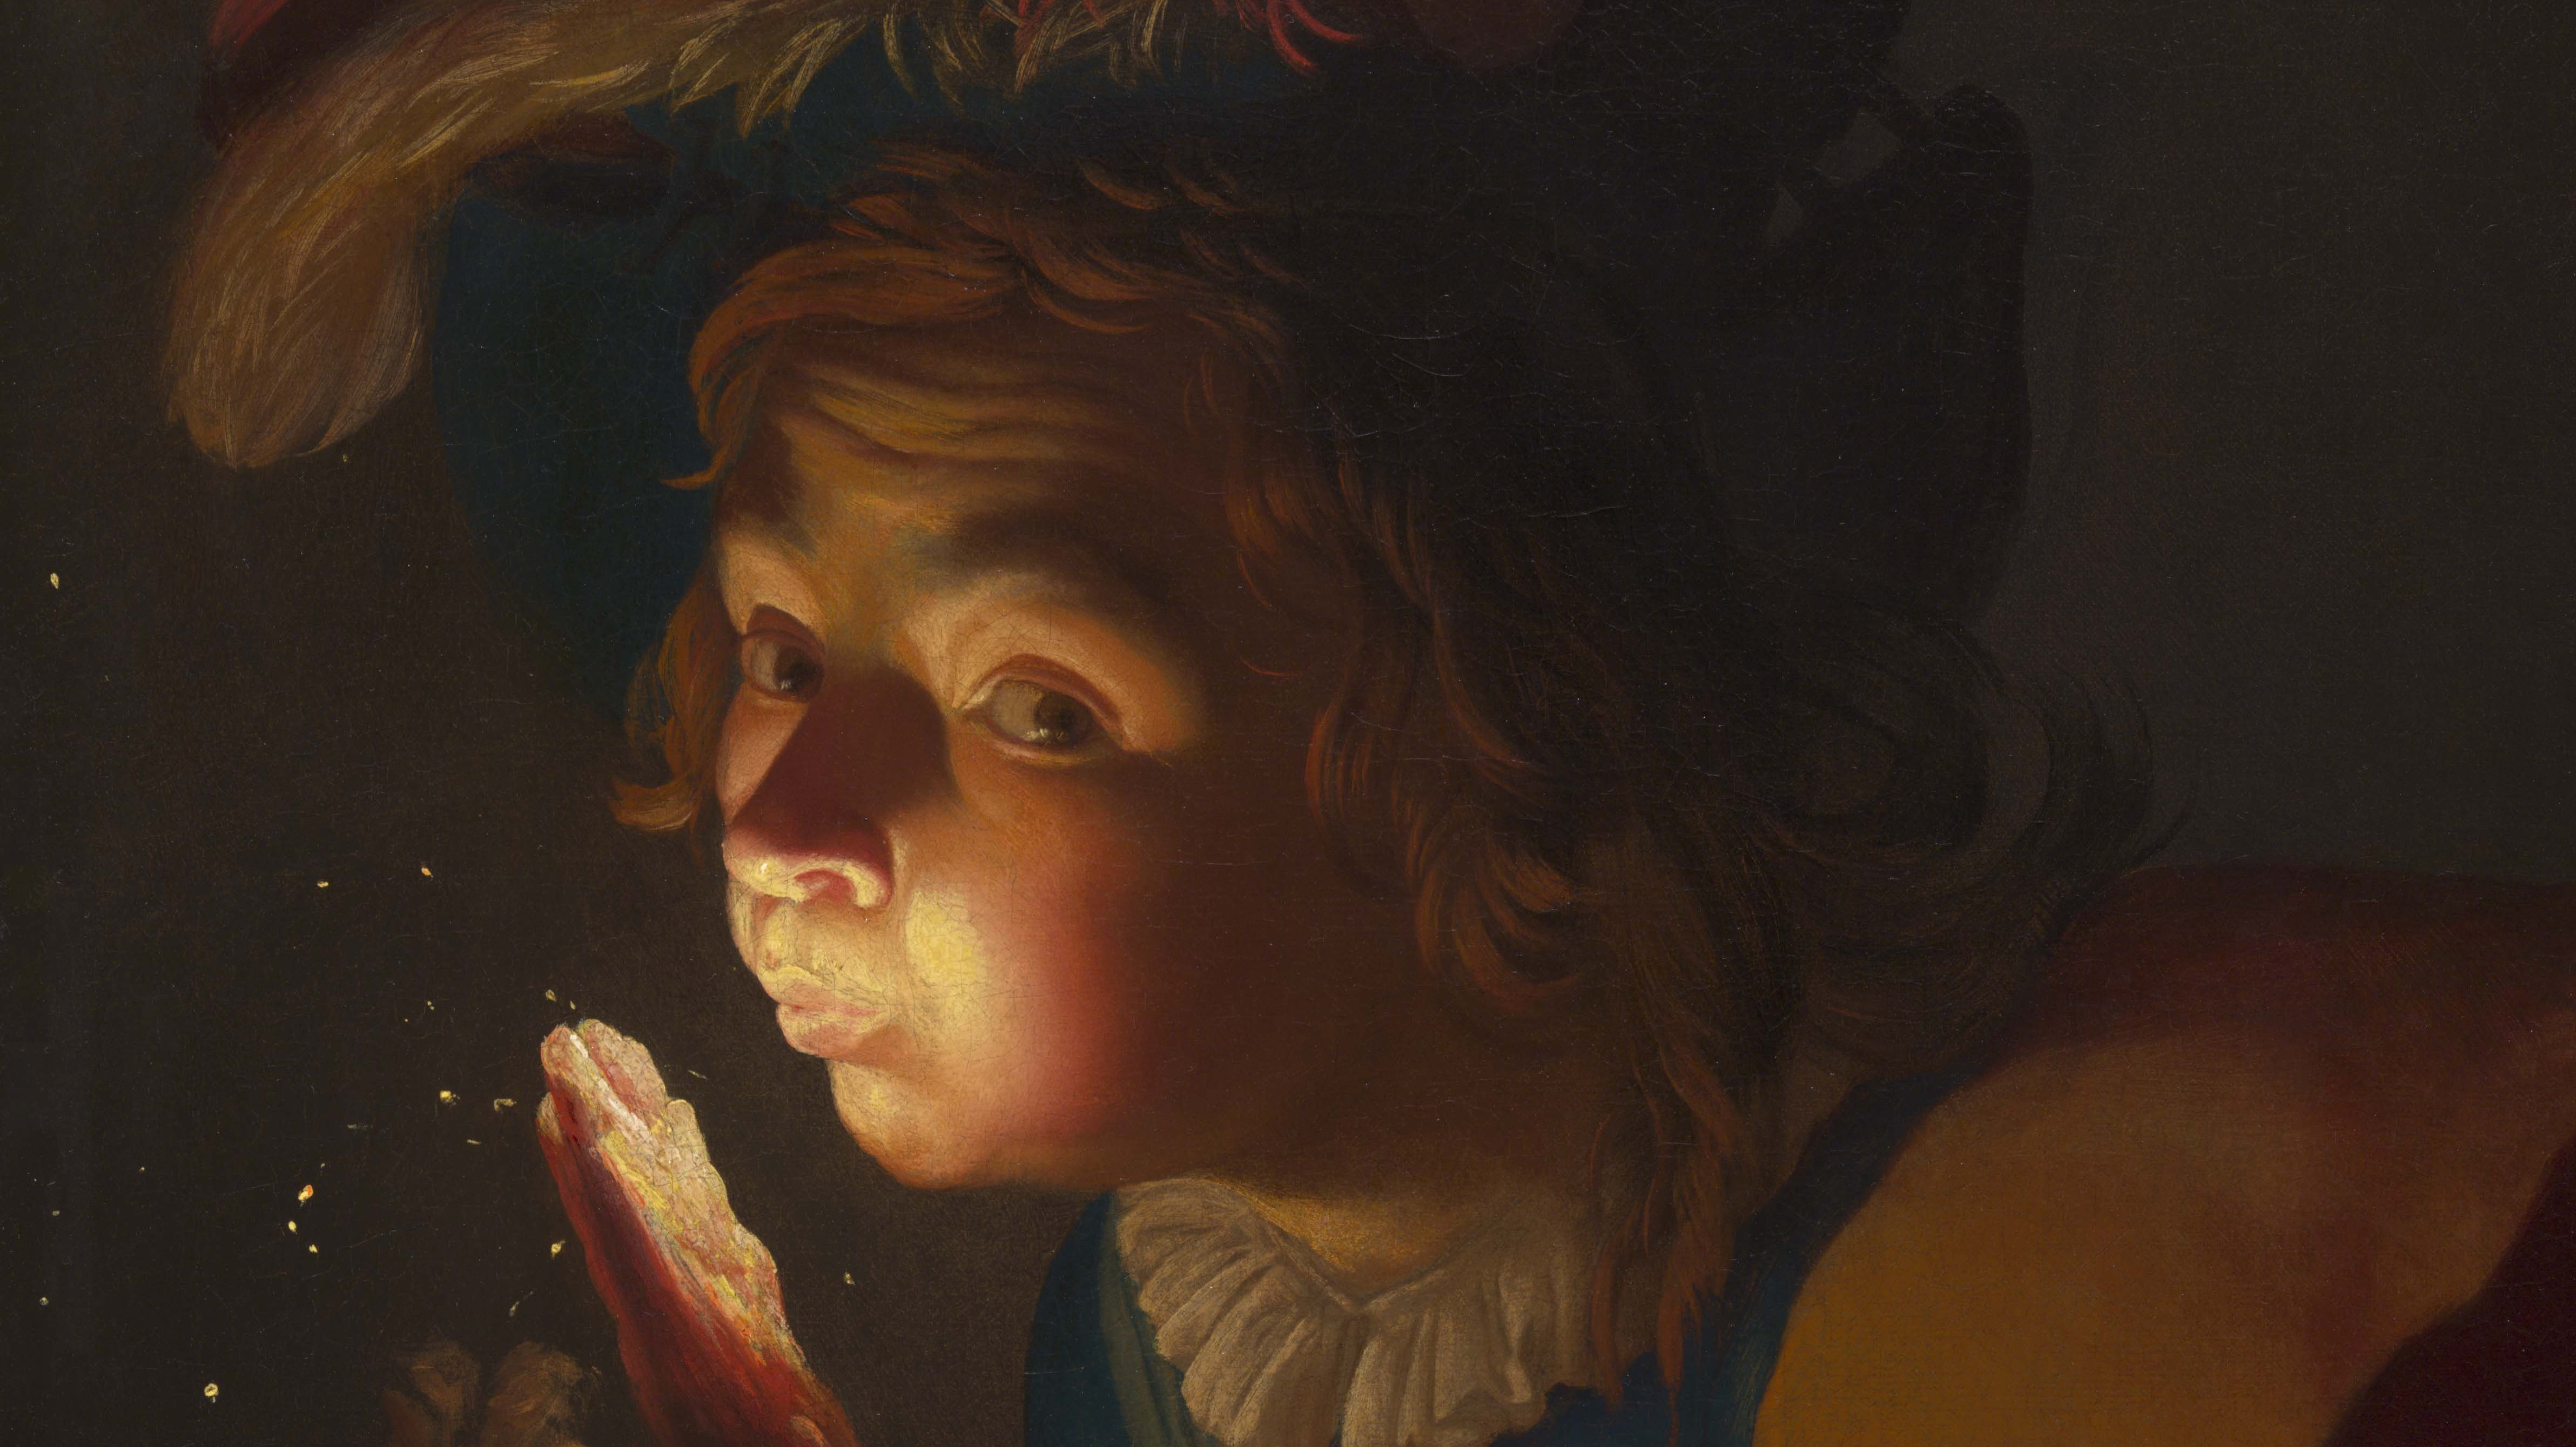 Gerrit van Honthorst painting from 1621/22 called A Boy Blowing on a Firebrand, 1621/22.